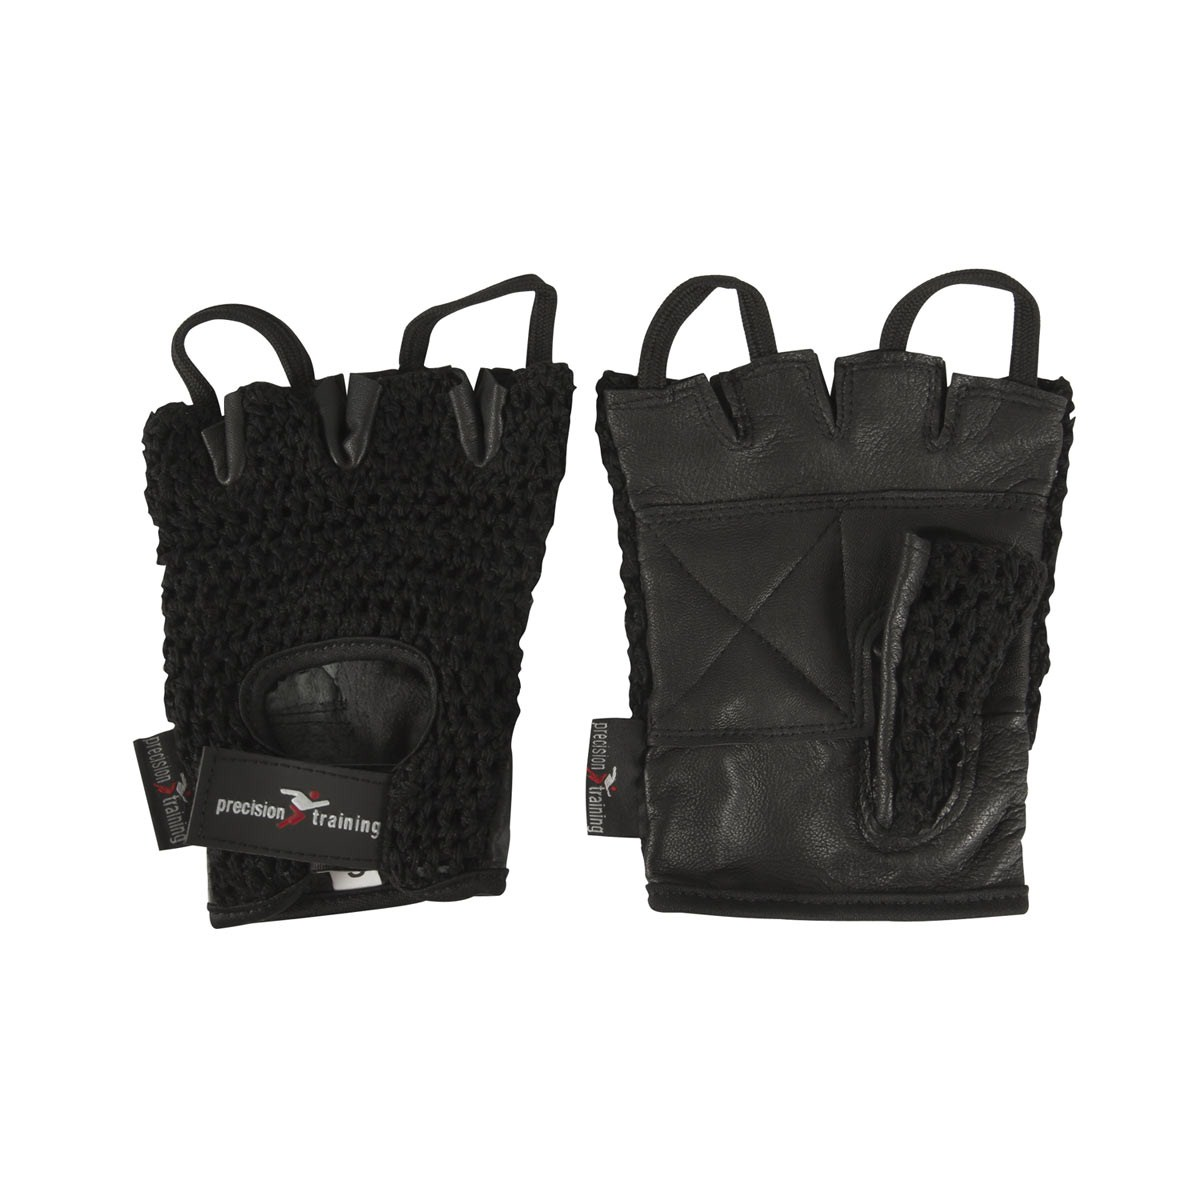 Weightlifting Gym Gloves Rugbystore